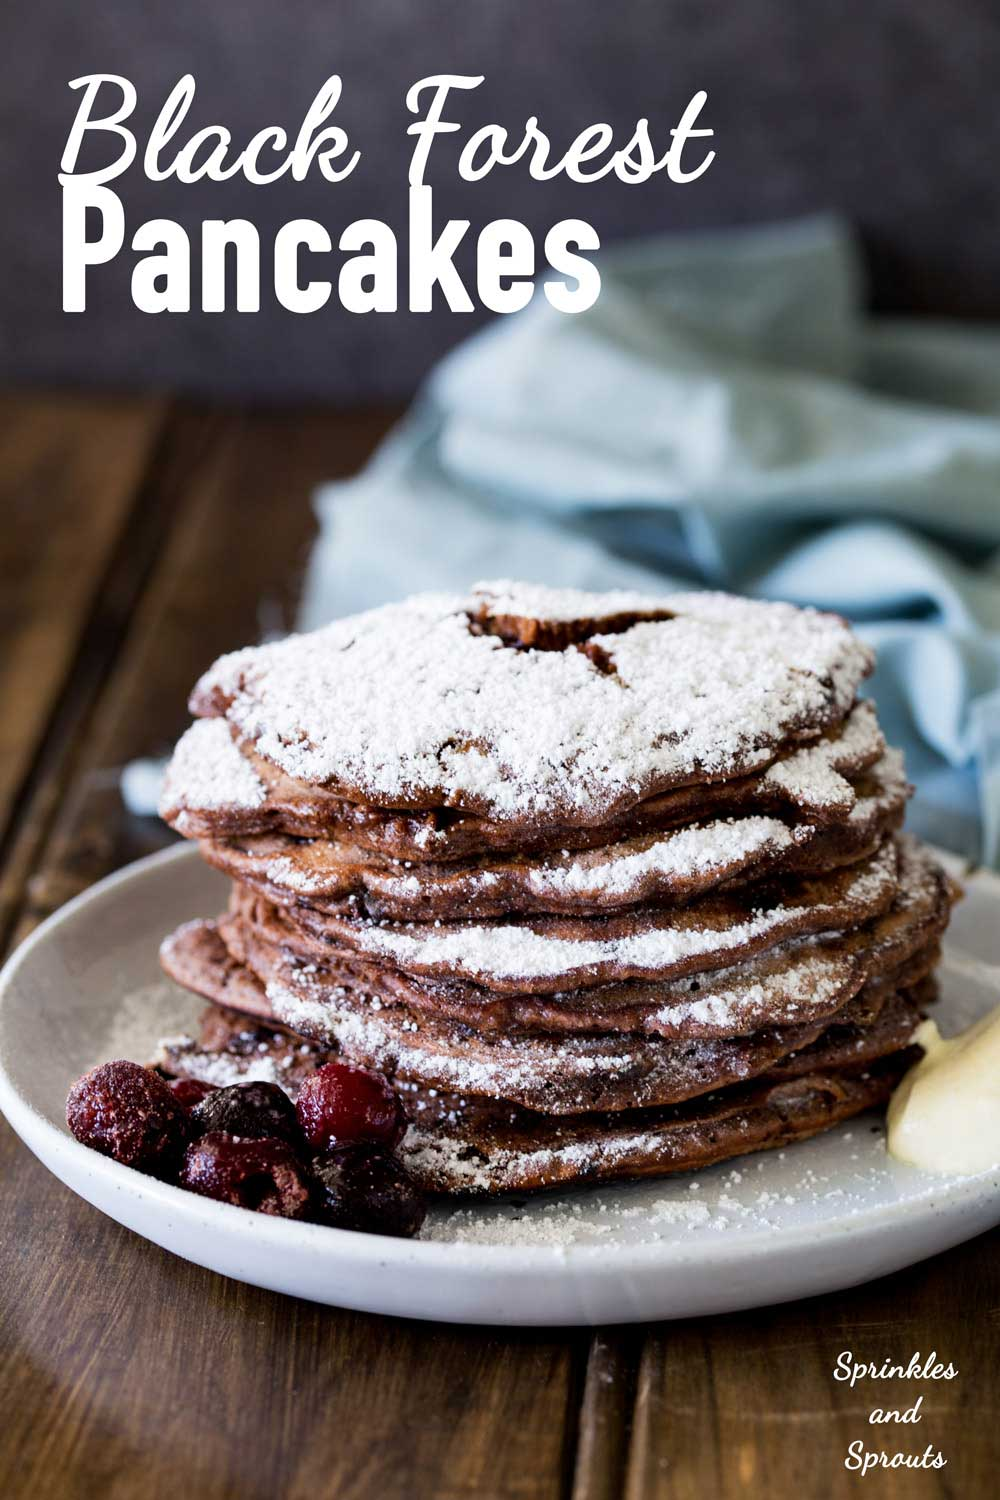 Rich chocolate pancakes, served with a delicious fruity cherry sauce and a good dollop of cream. These black forest pancakes are an extravagant but welcome breakfast treat!